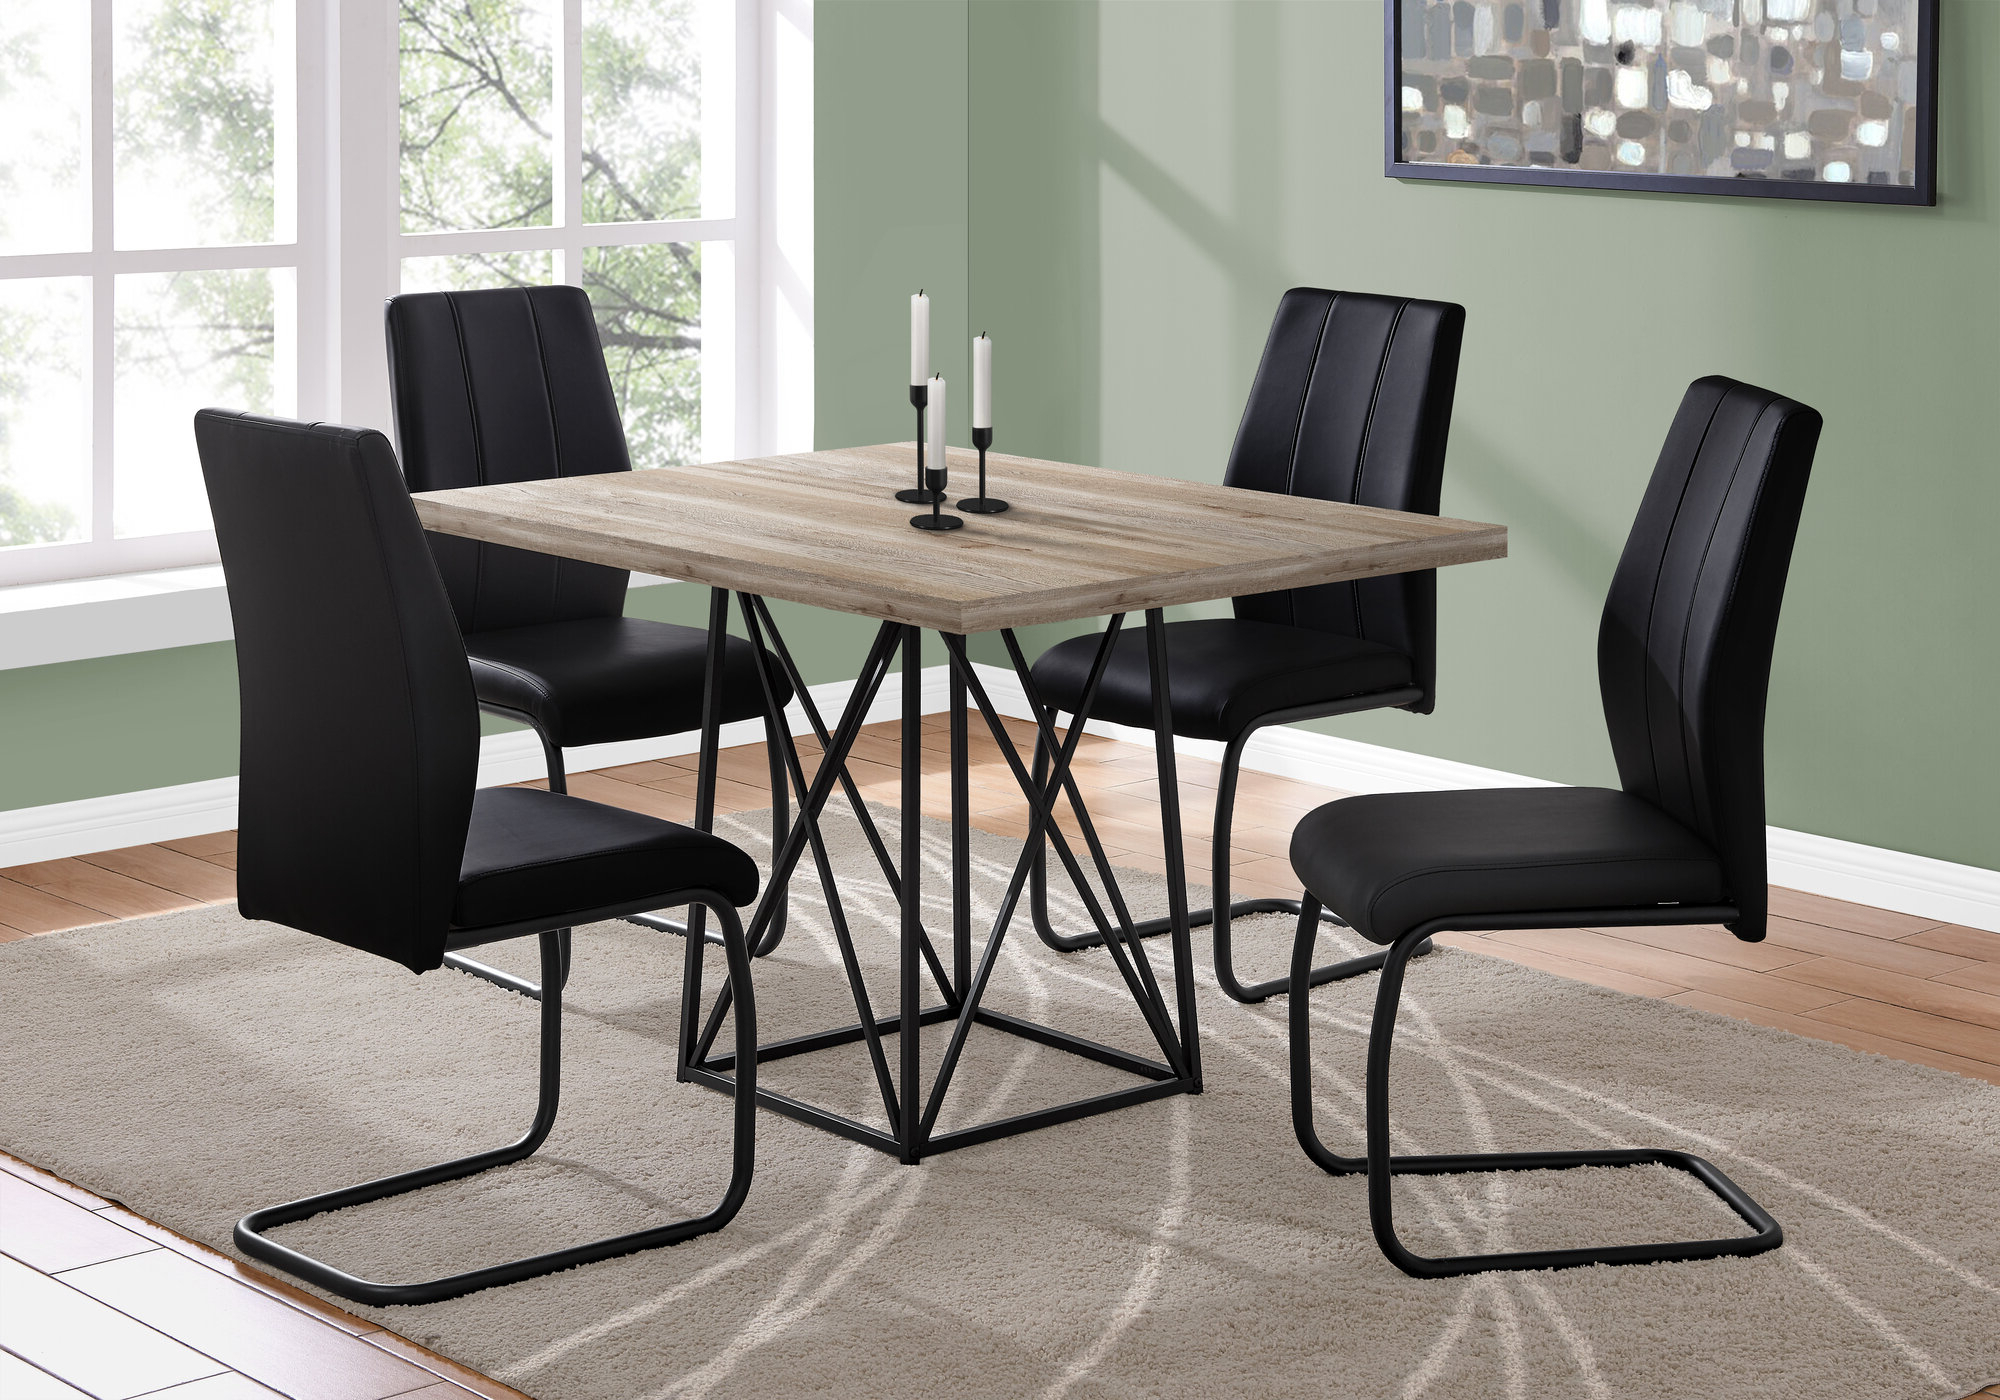 5 Piece Dining Table Set Regarding Current Middleport 5 Piece Dining Sets (Gallery 19 of 20)